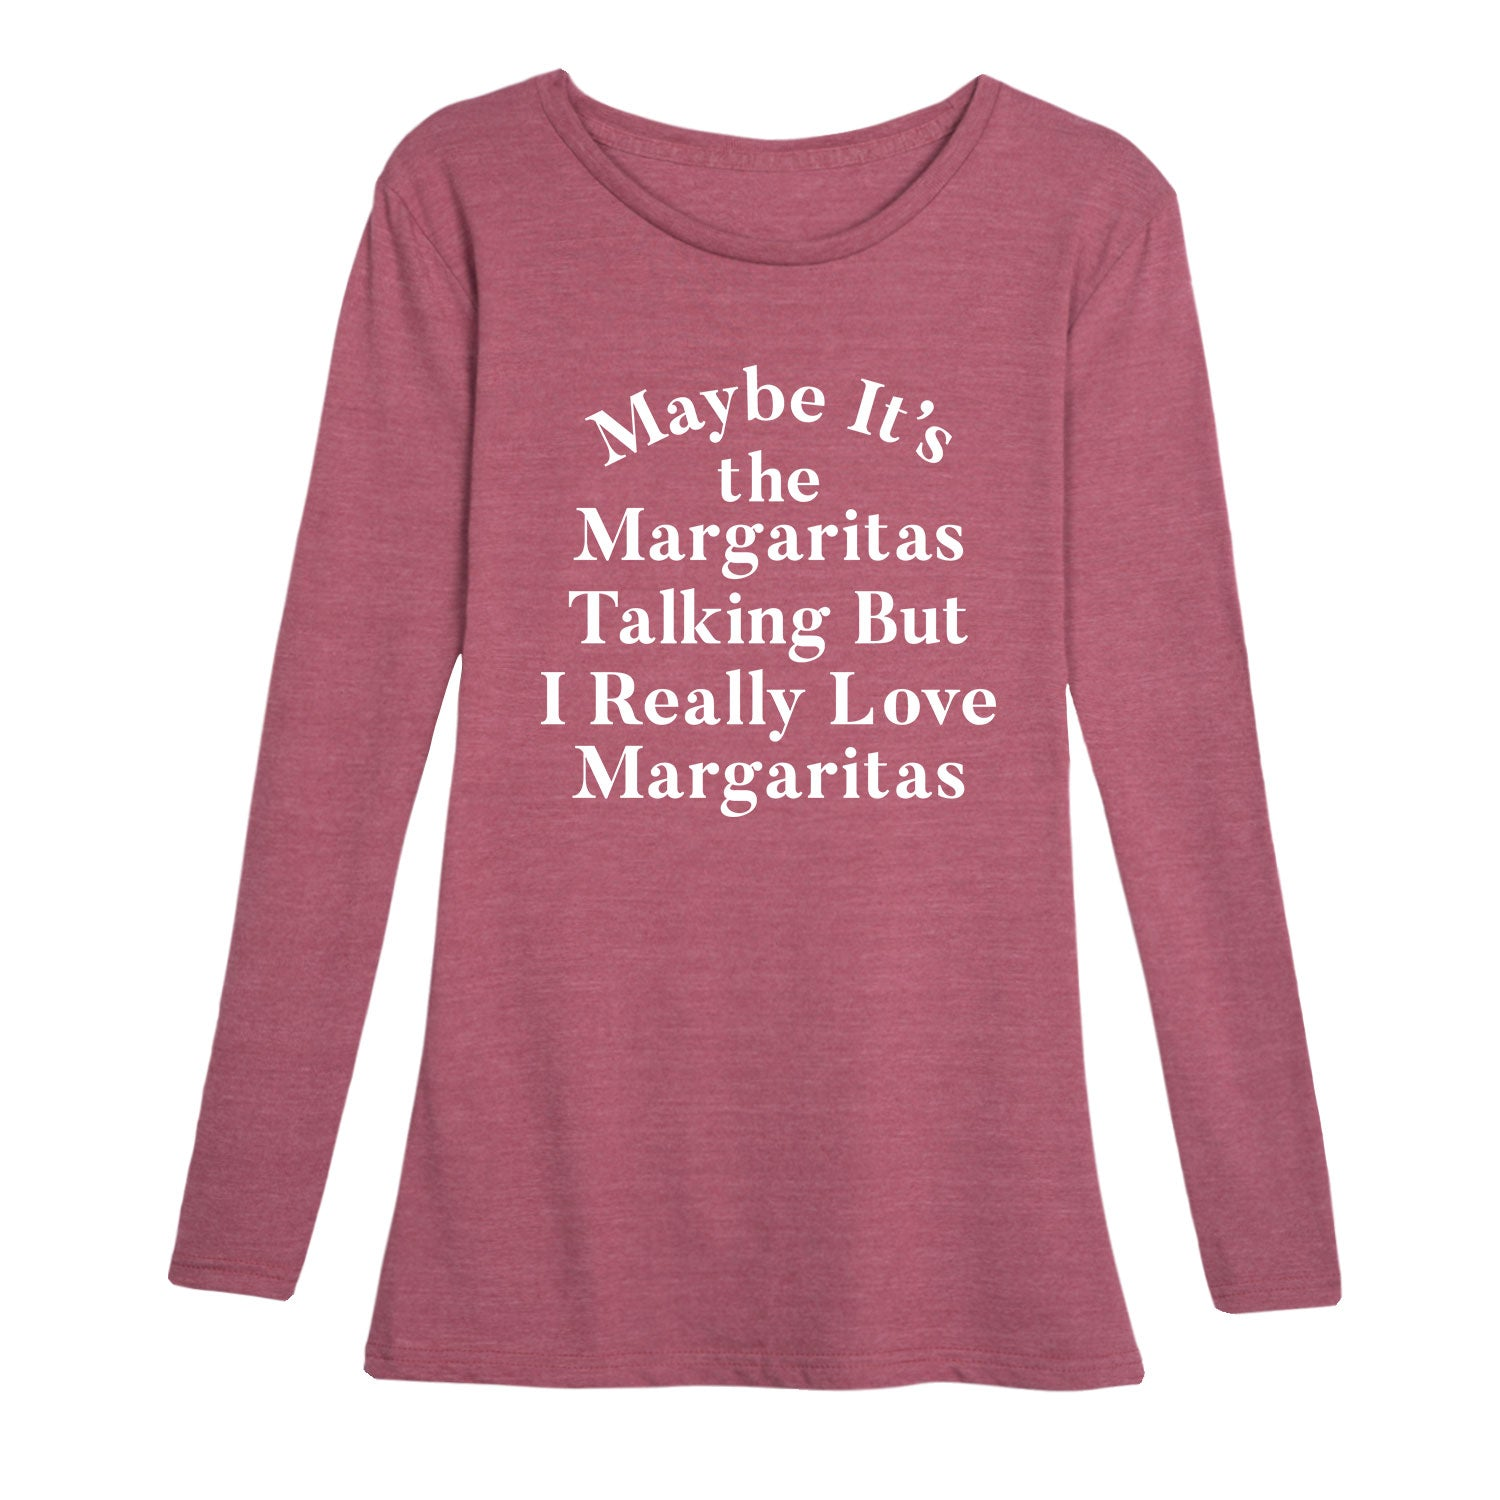 I Really Love Margaritas - Women's Long Sleeve T-Shirt